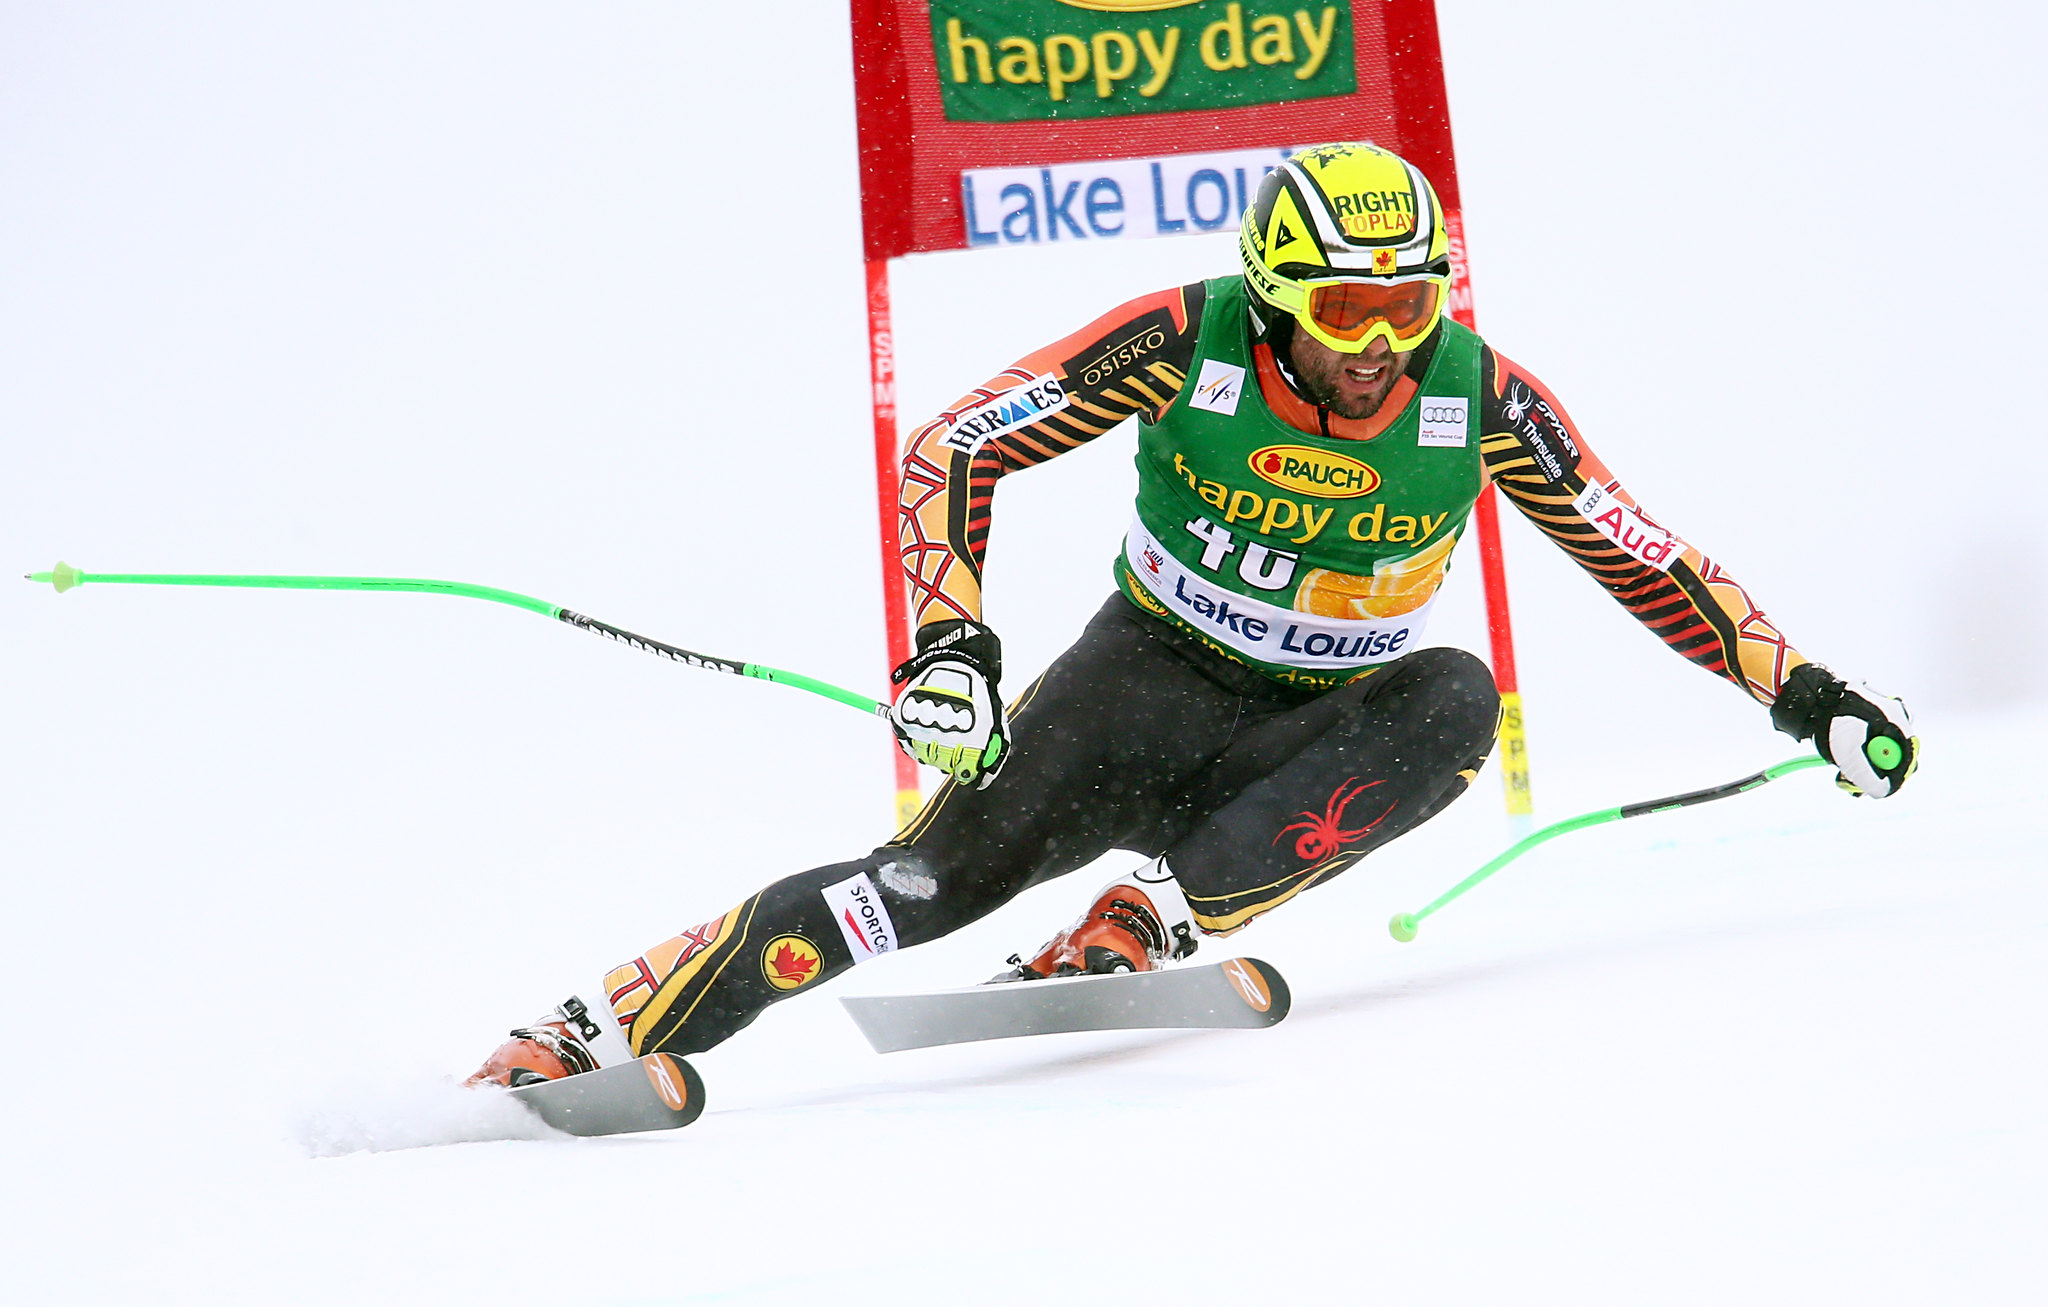 Manny in action during the super-G in Lake Louise, CAN